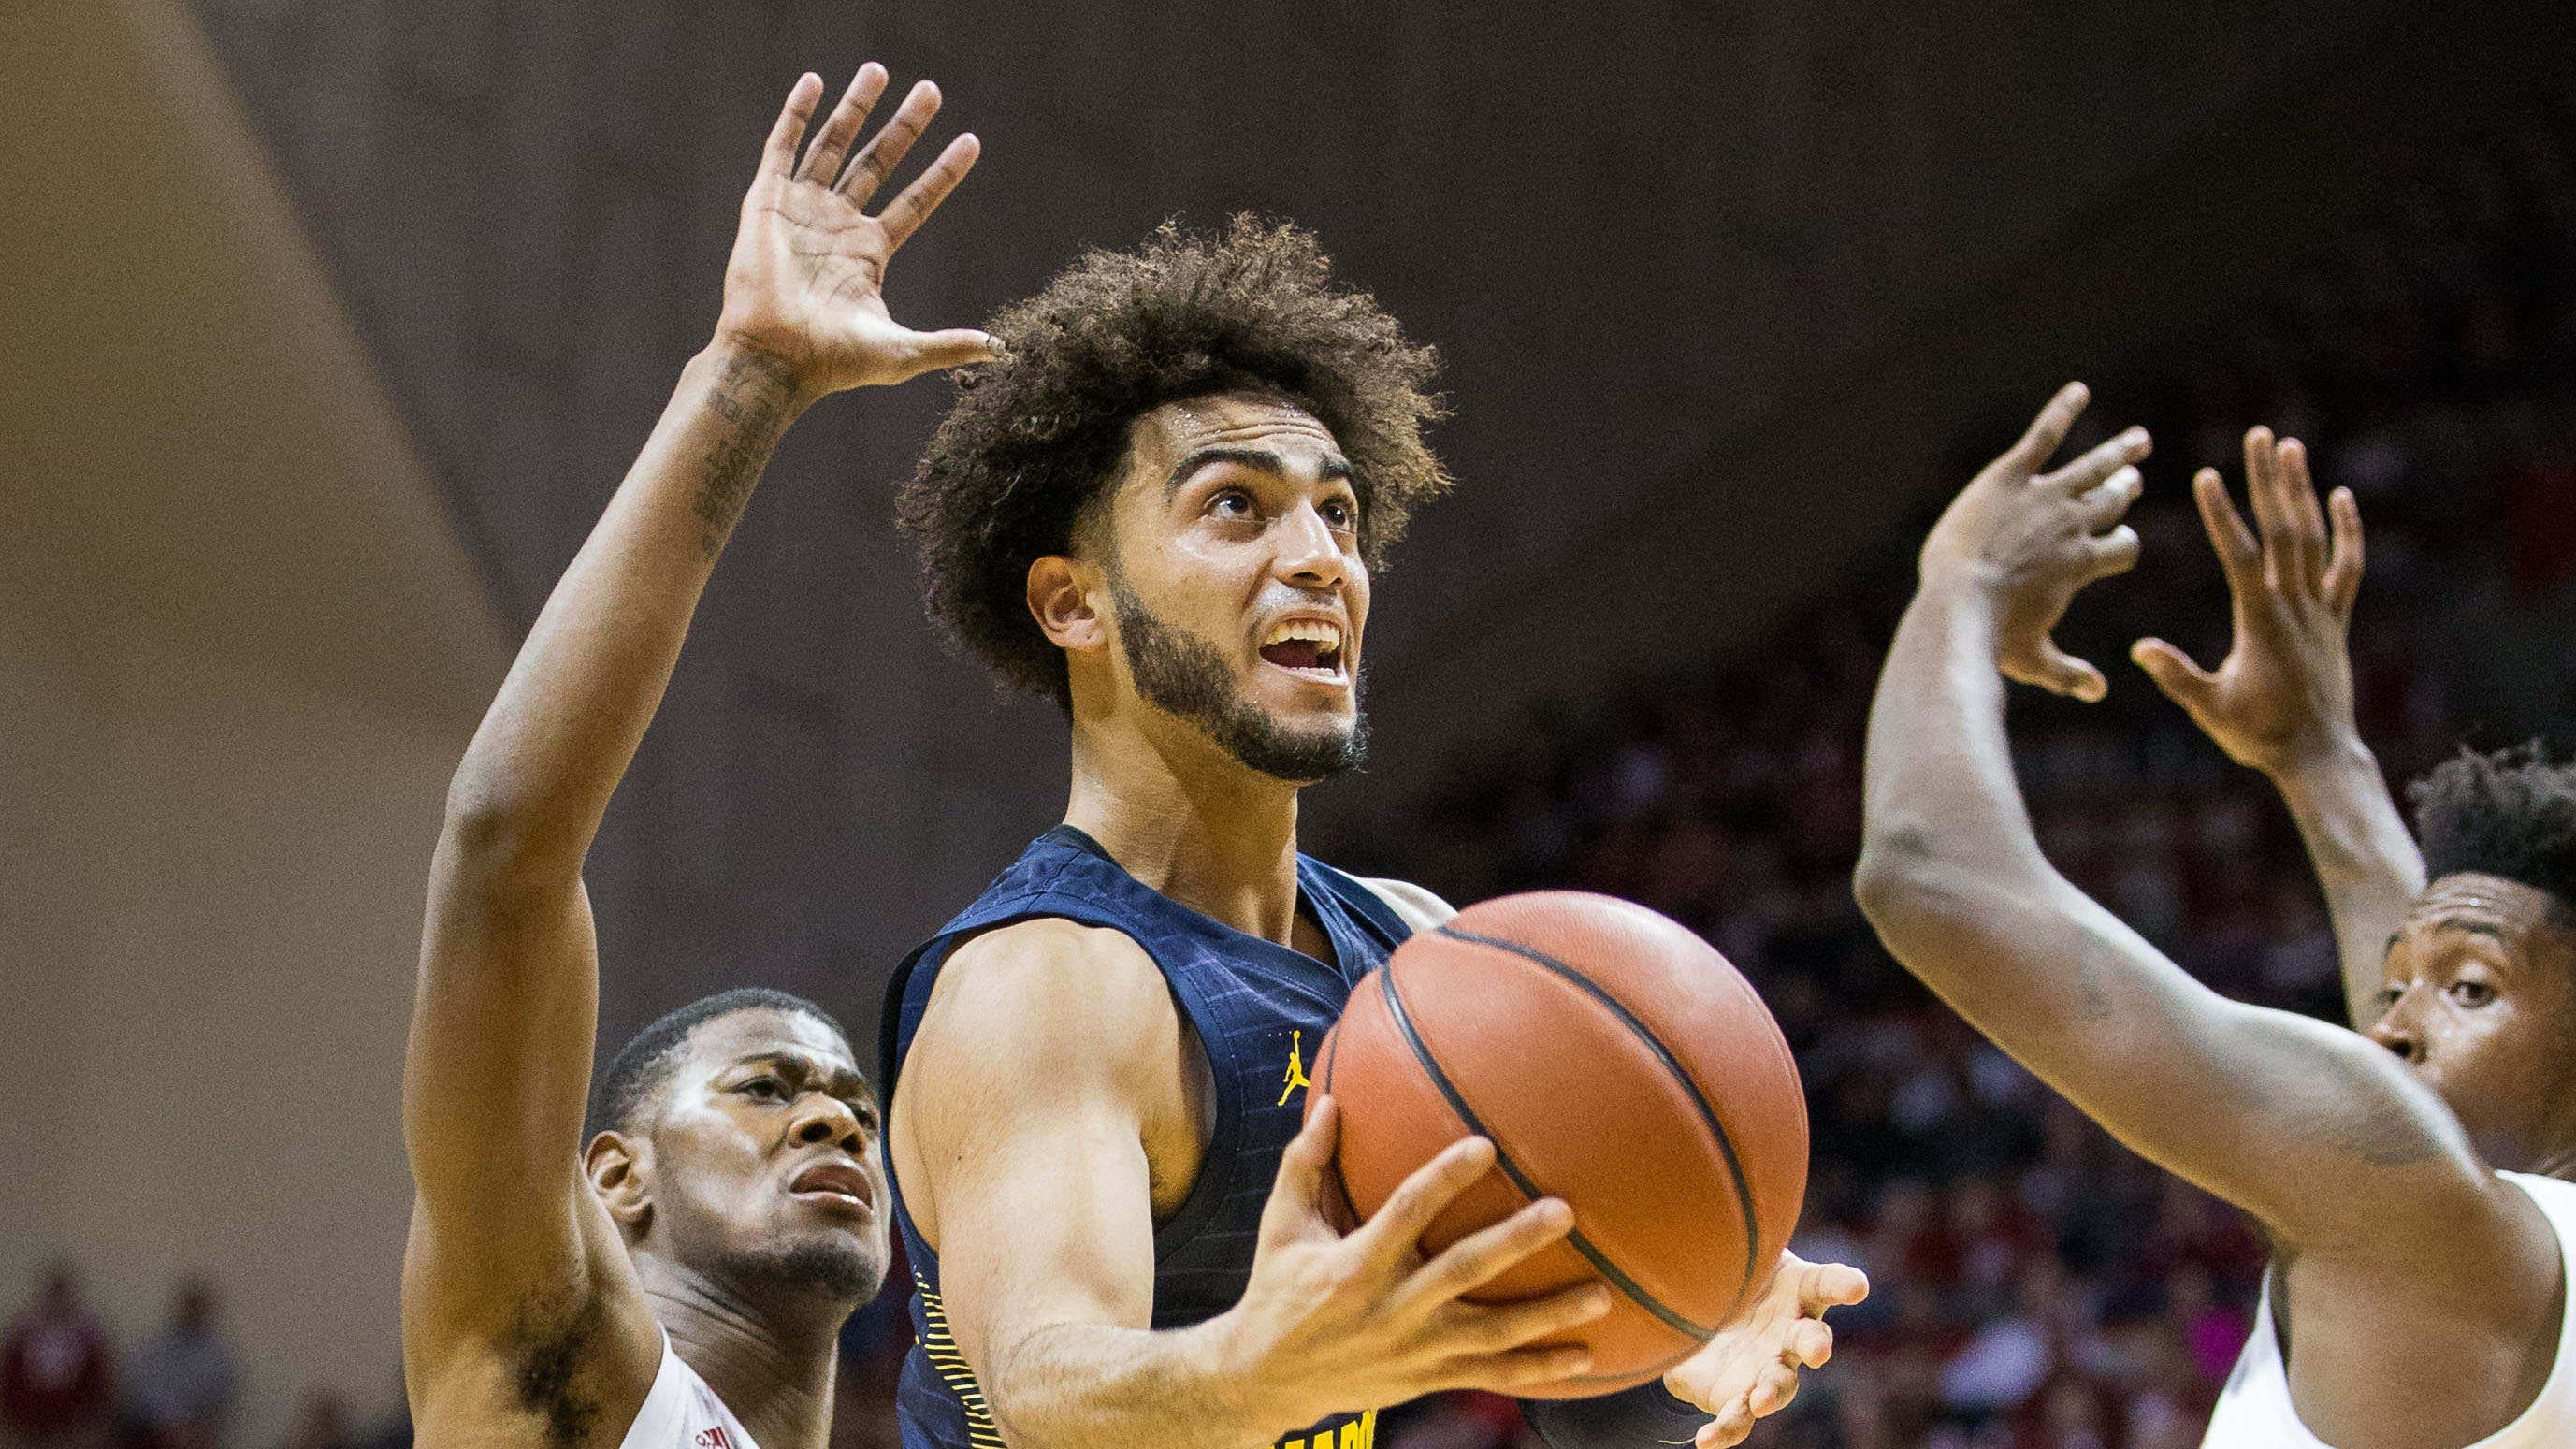 Marquette opens NIT Tip-off in New York against loaded Kansas